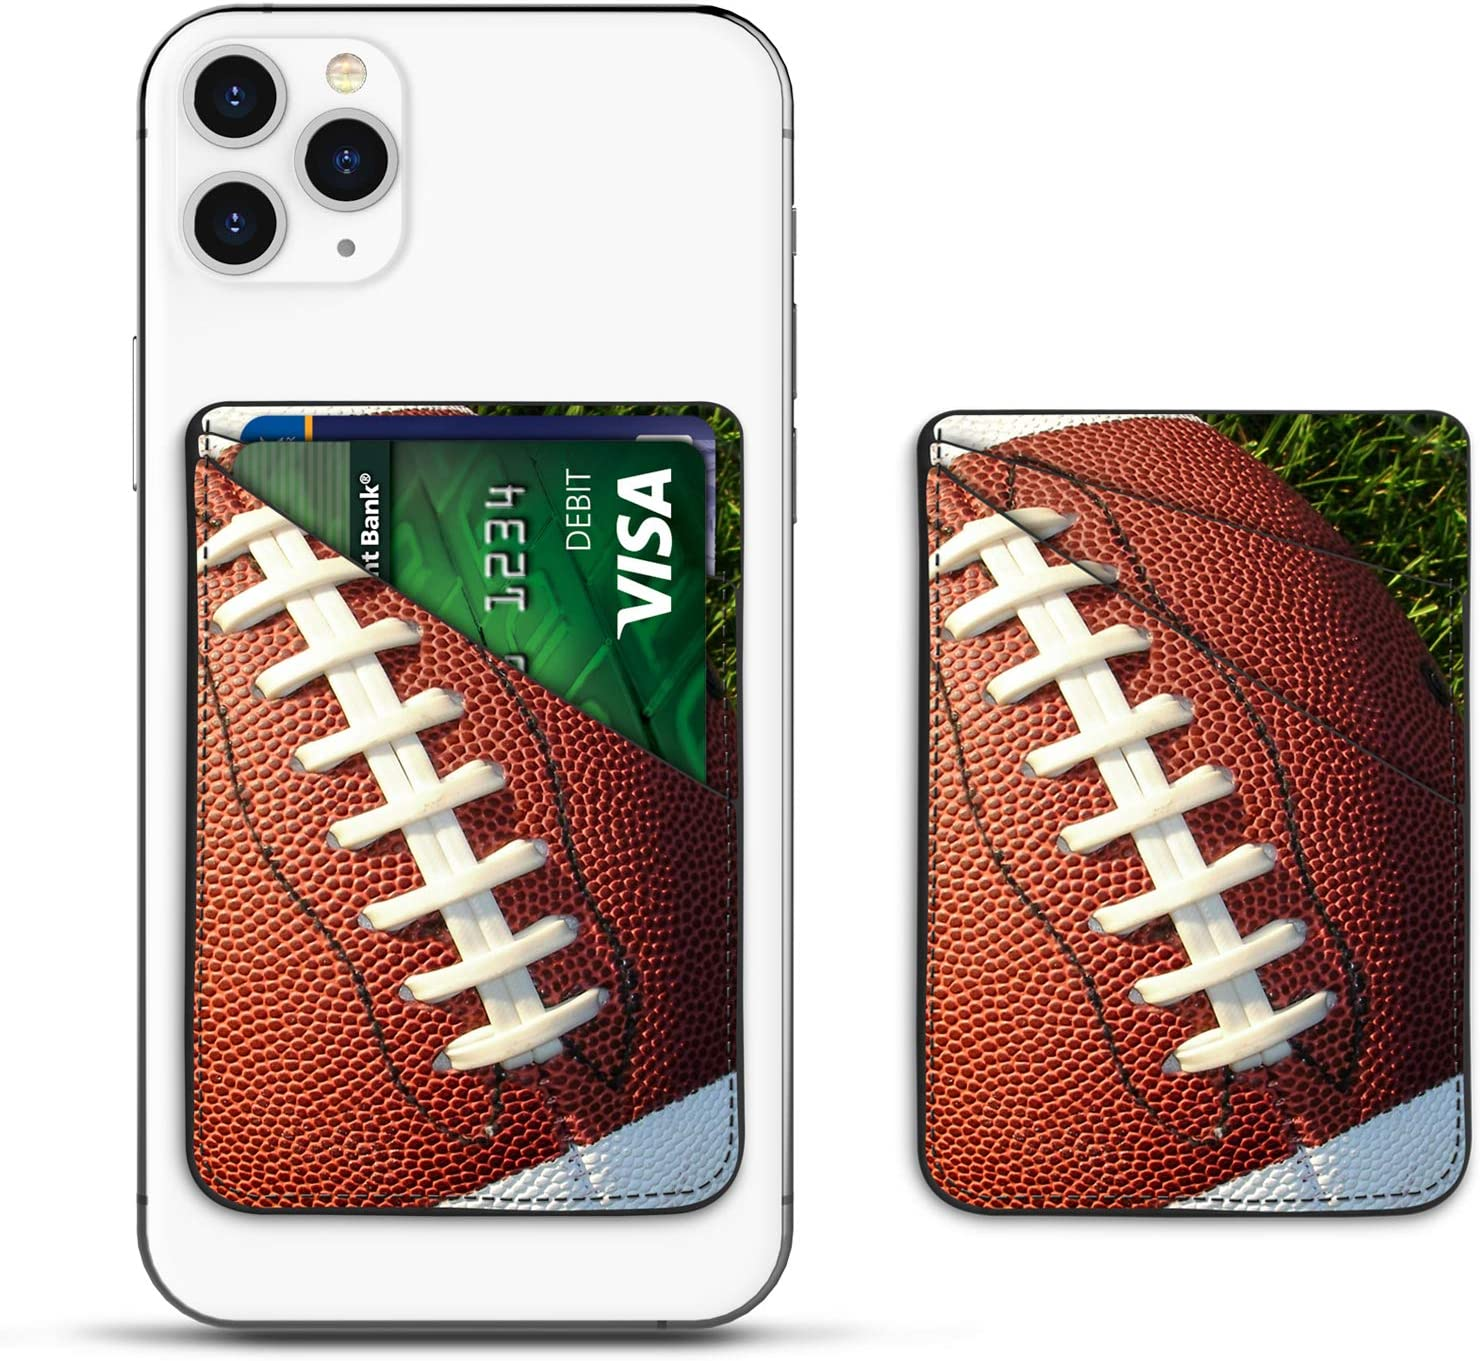 Njjex Phone Card Holder for Back of Phone, PU Leather ID Credit Card Wallet Cover Case Pouch Sleeve Pocket 3M Adhesive Stick on iPhone Samsung Galaxy LG Motorola Android Smartphones [Football]